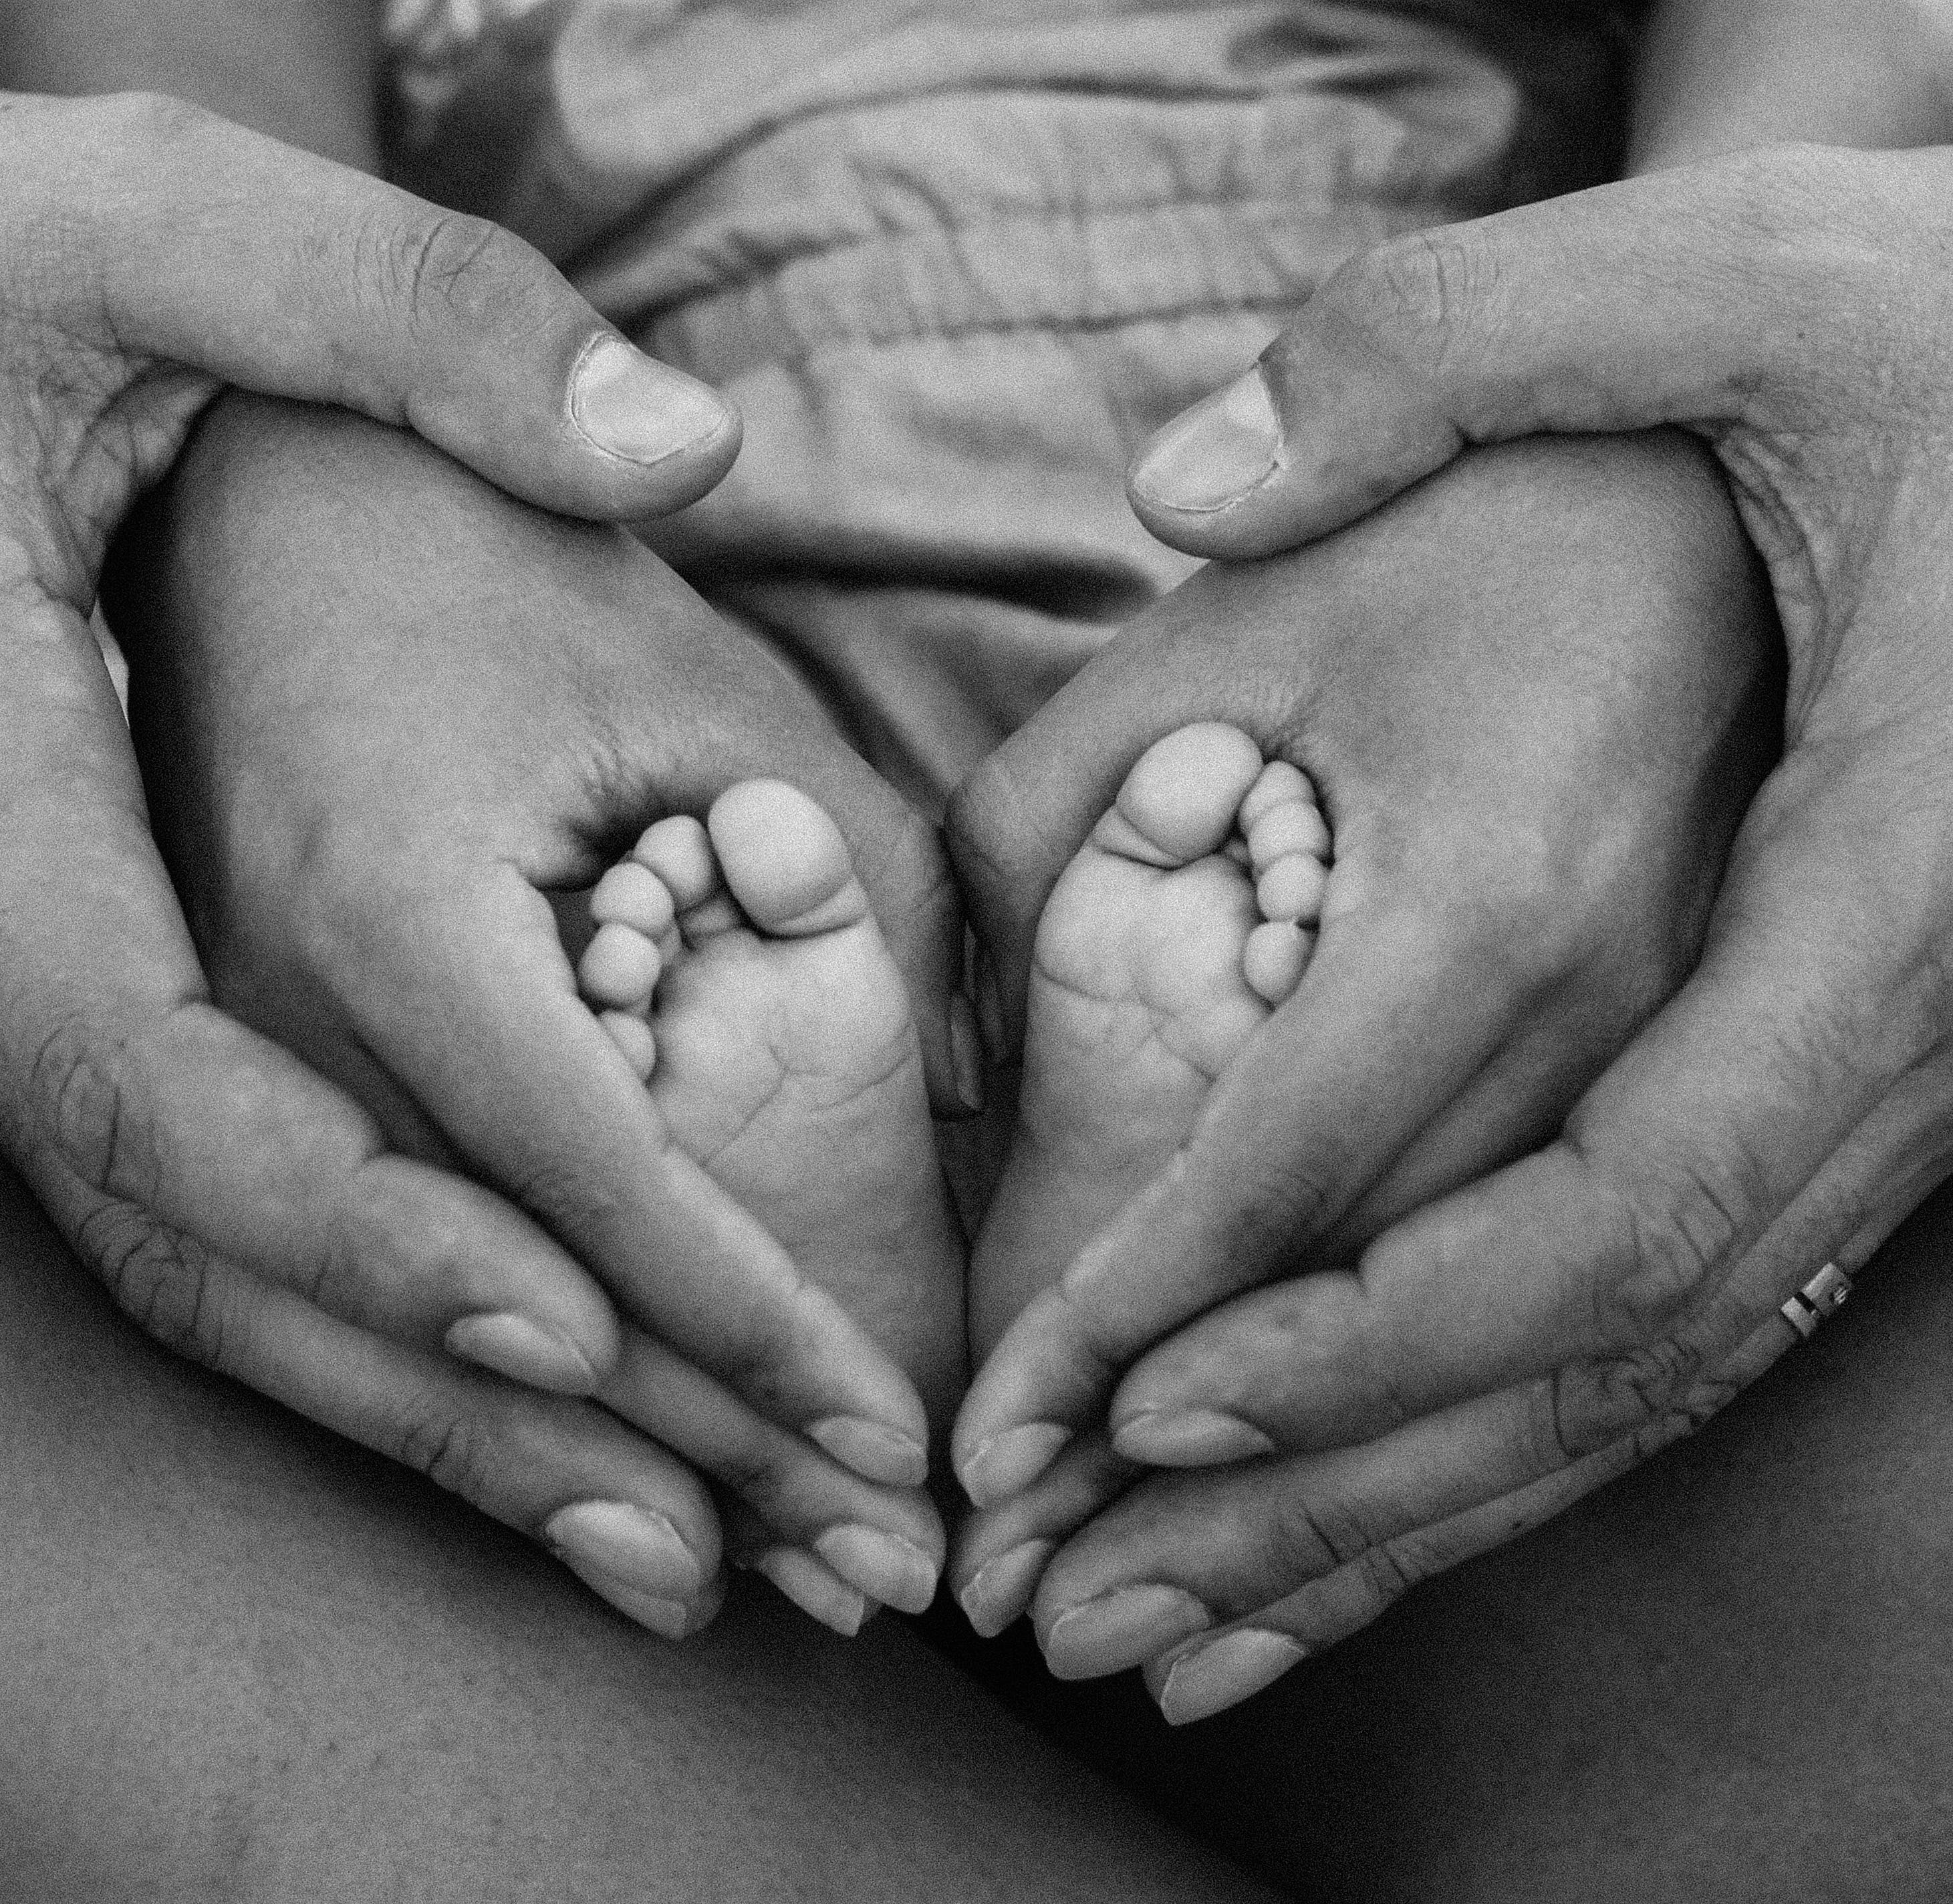 Grayscale Photo of Person Holding Feet and Hands